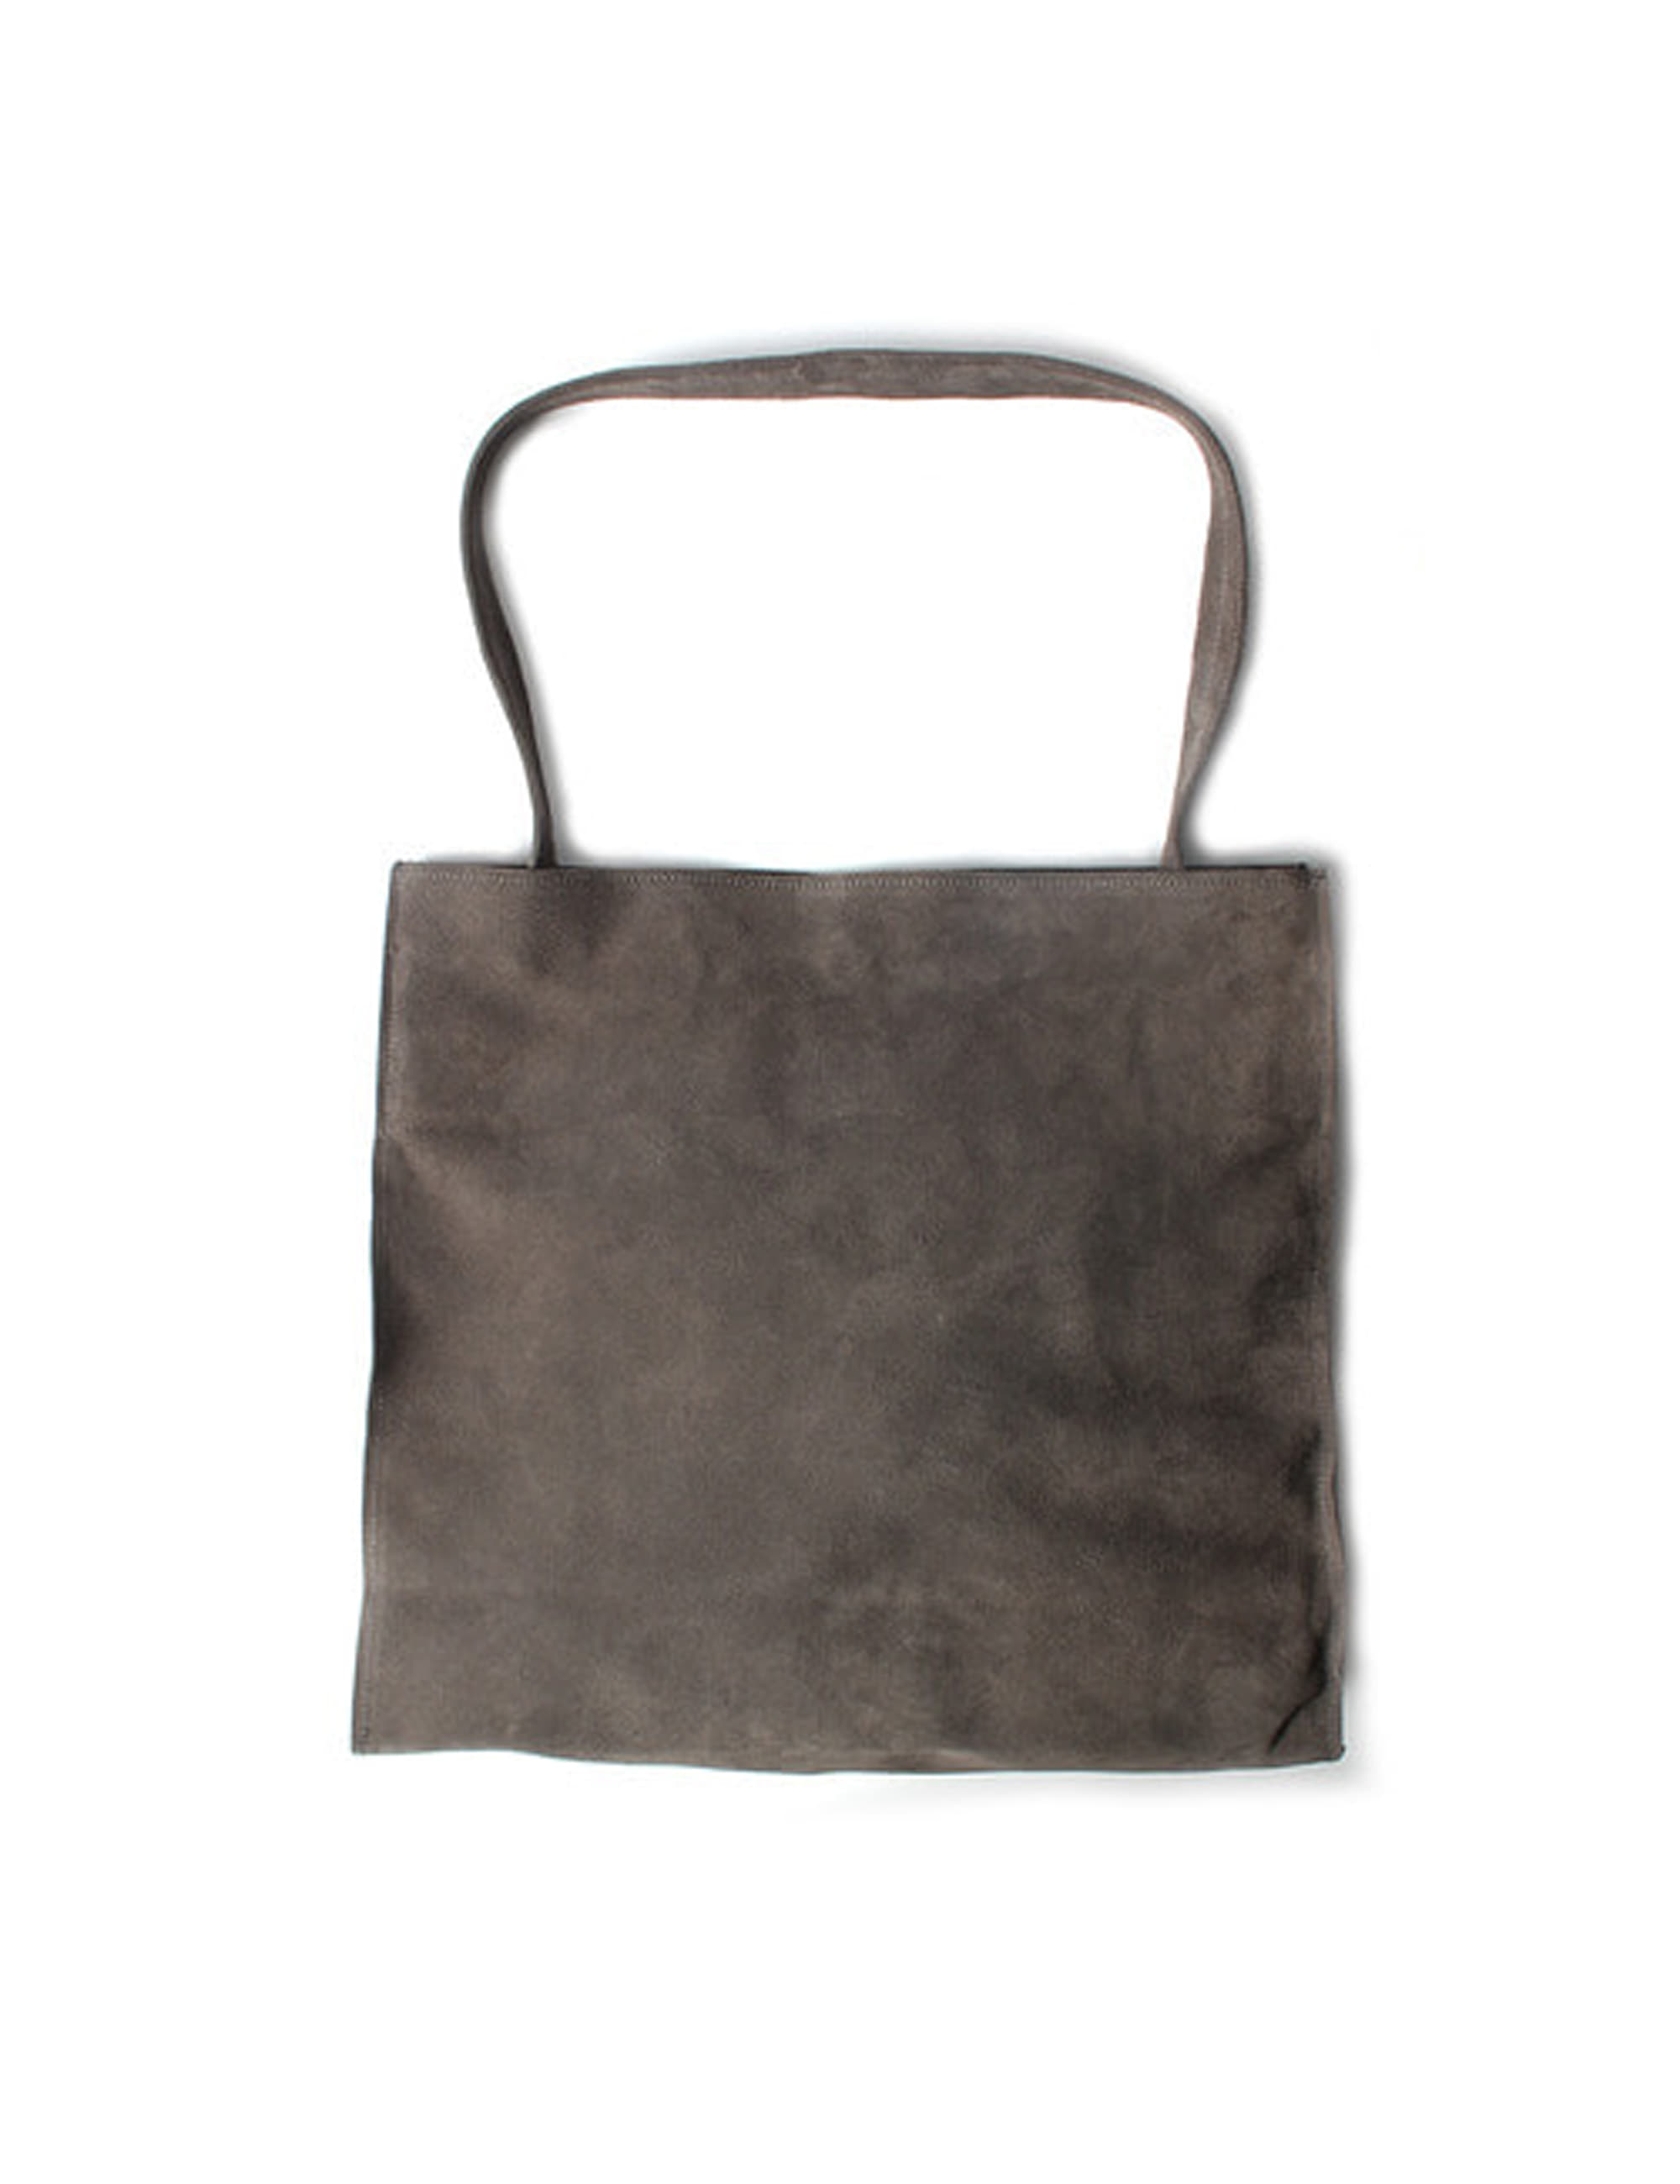 1ST NAME BAG_L_CHARCOAL